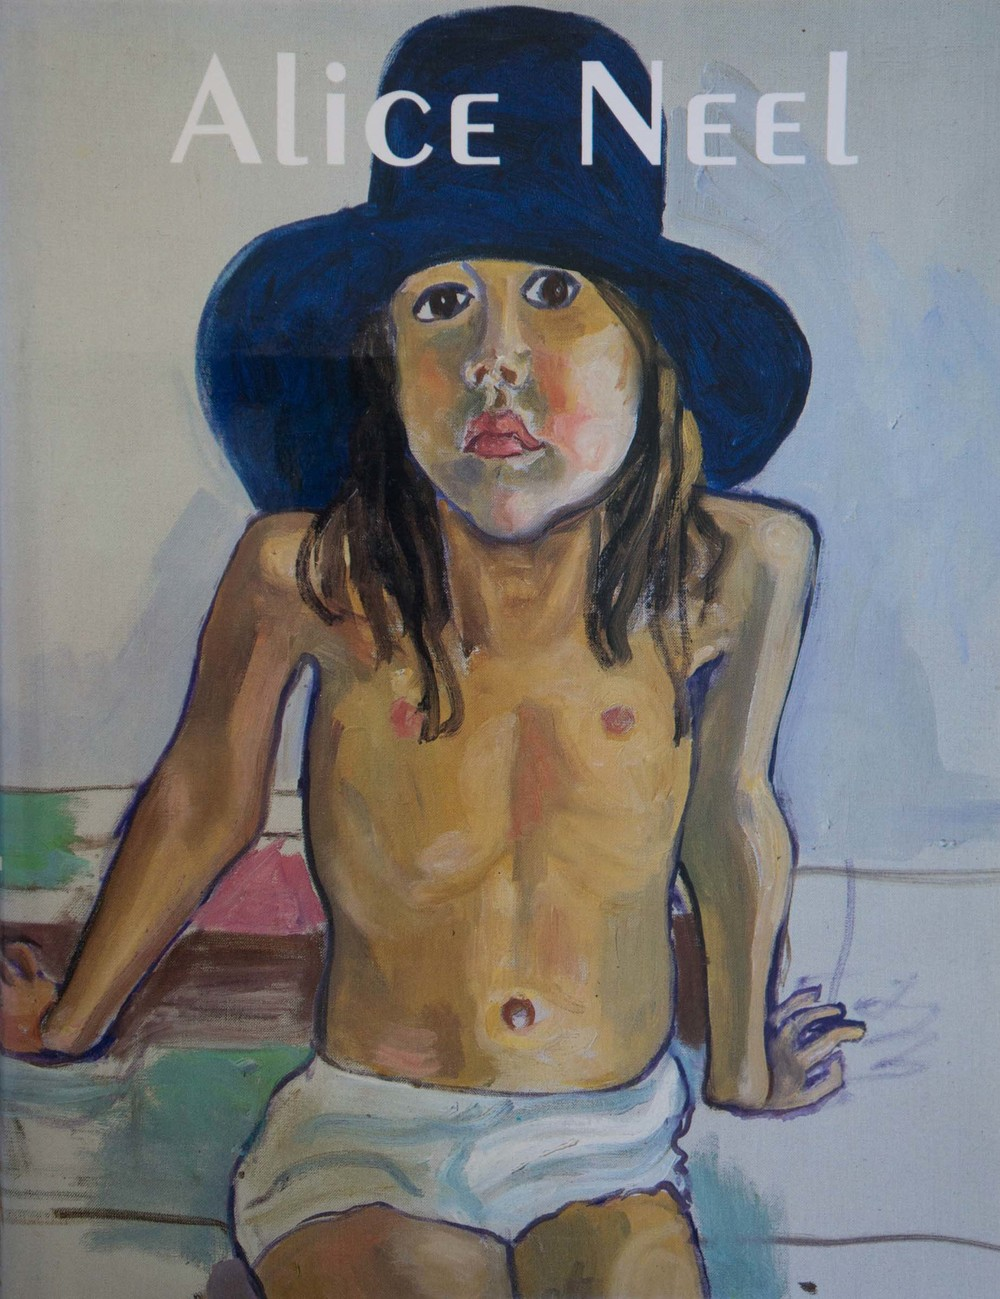 site-11-19-14 alice neel-cover art.jpg